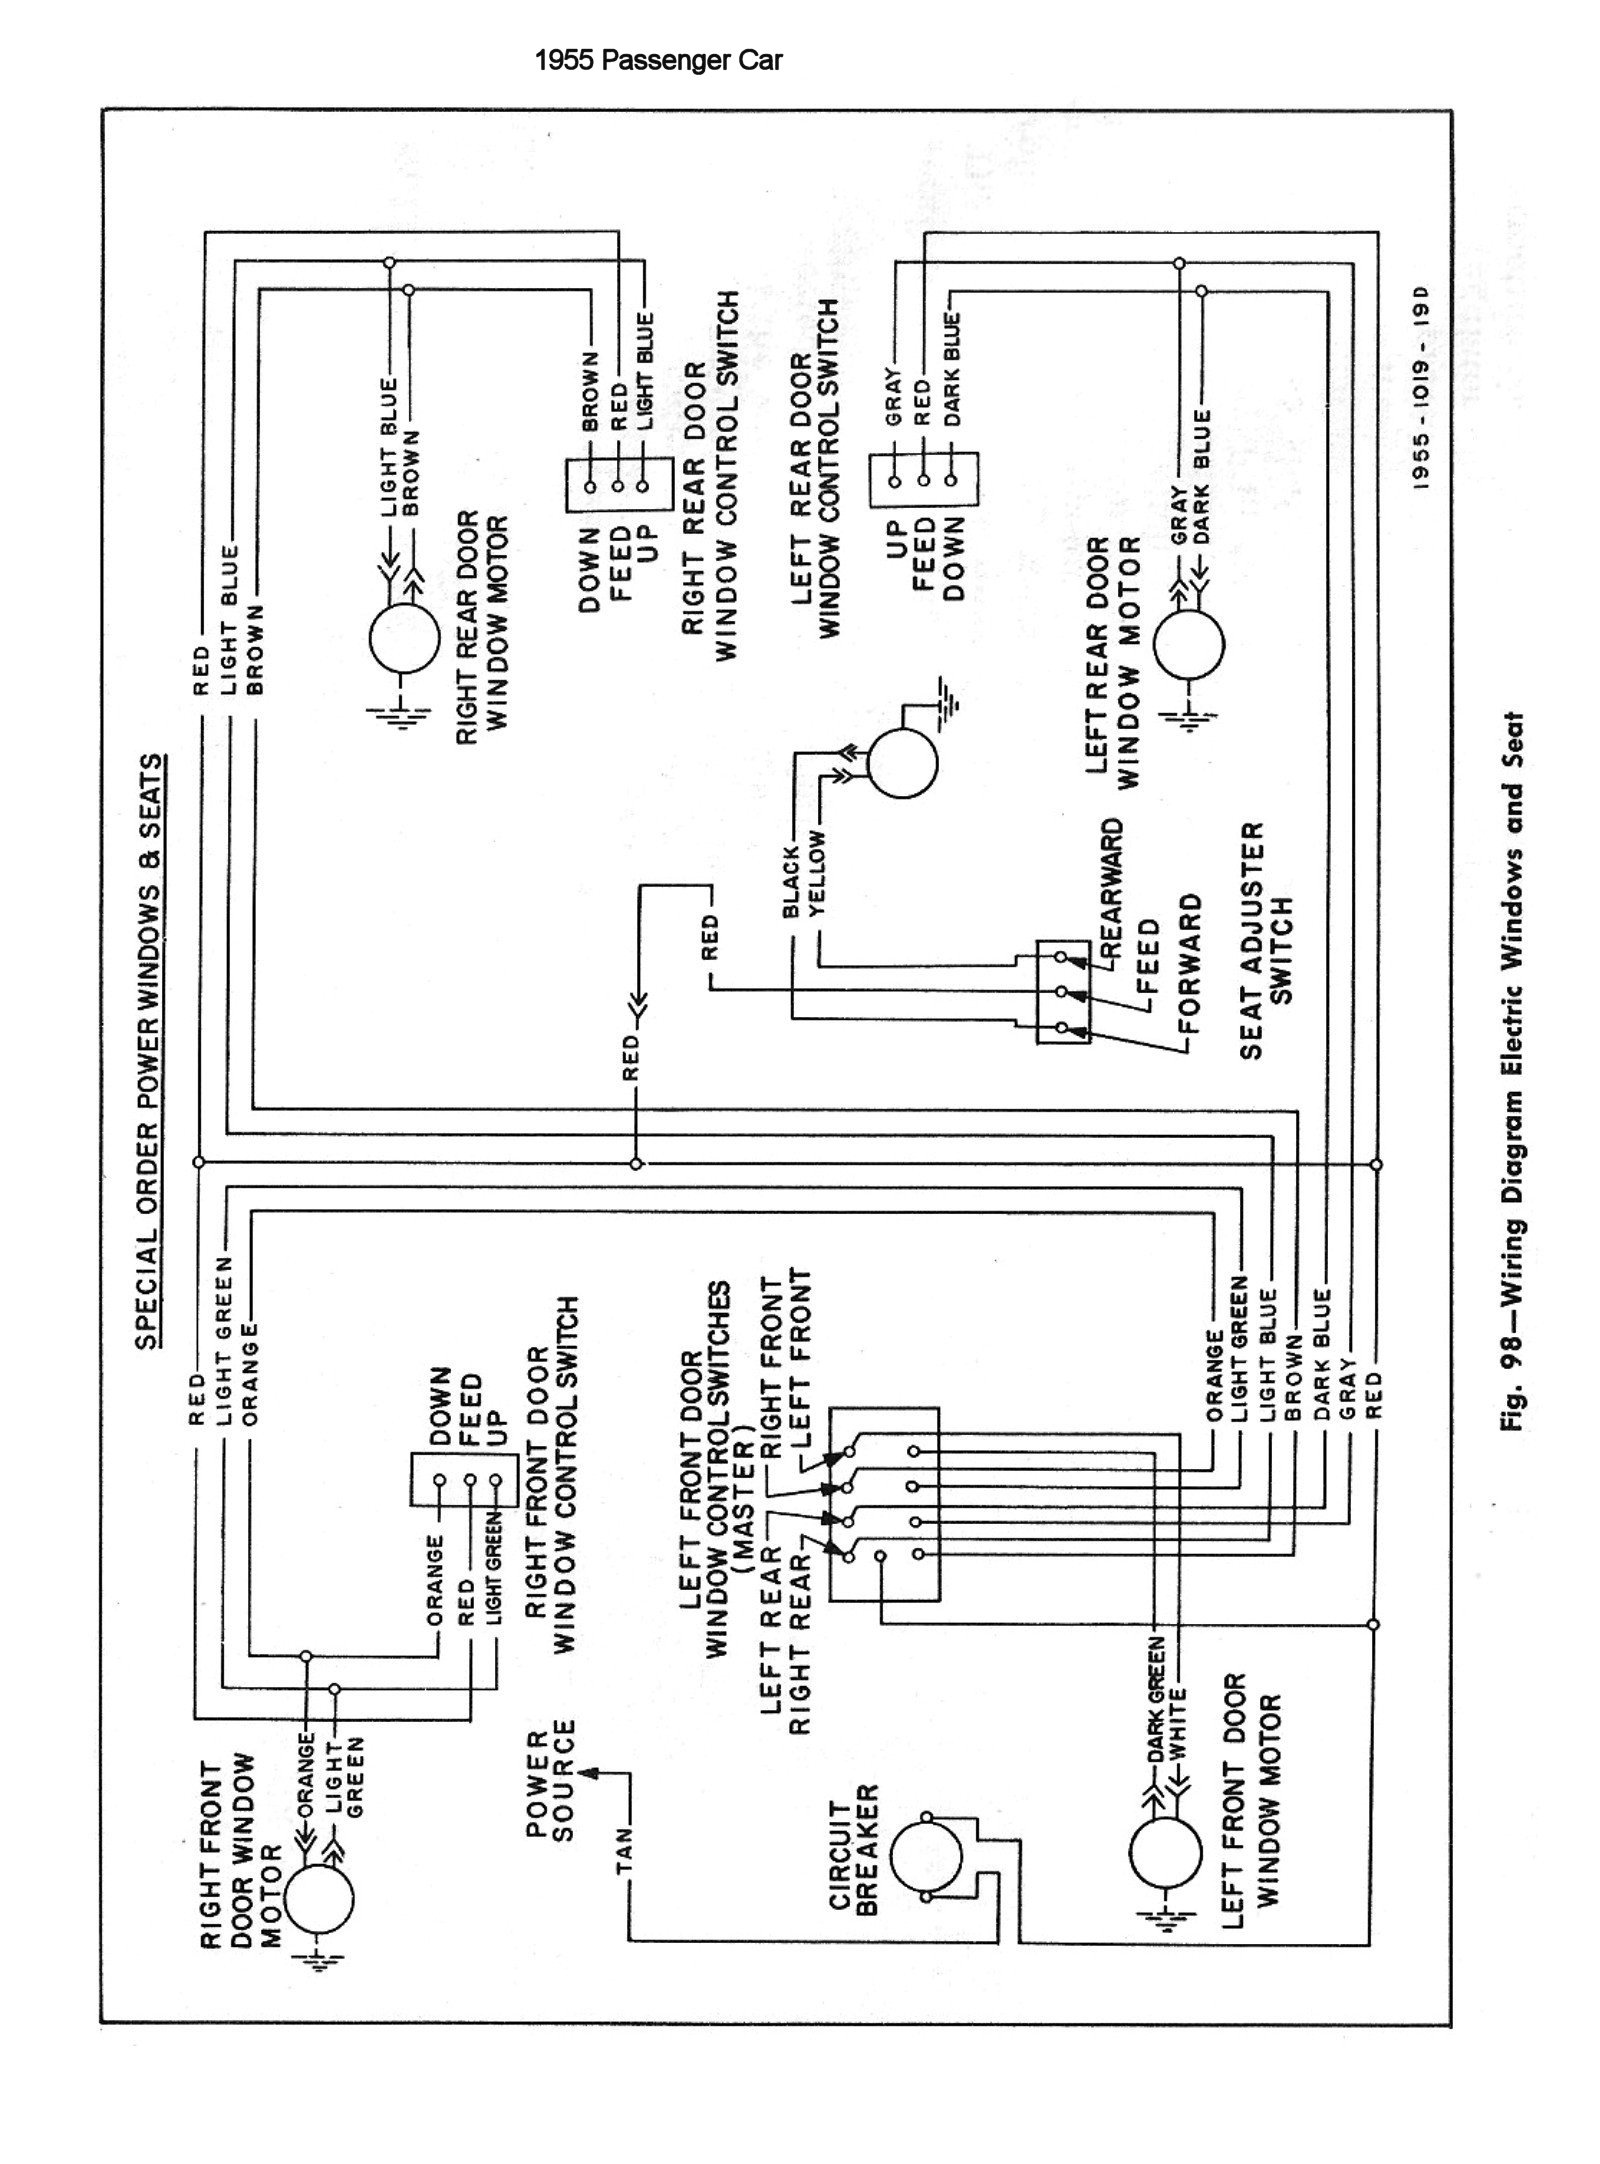 55csm0146 100 [ 1955 chevy wiring diagram ] mercury outboard wiring 2015 chevy silverado headlight wiring diagram at honlapkeszites.co